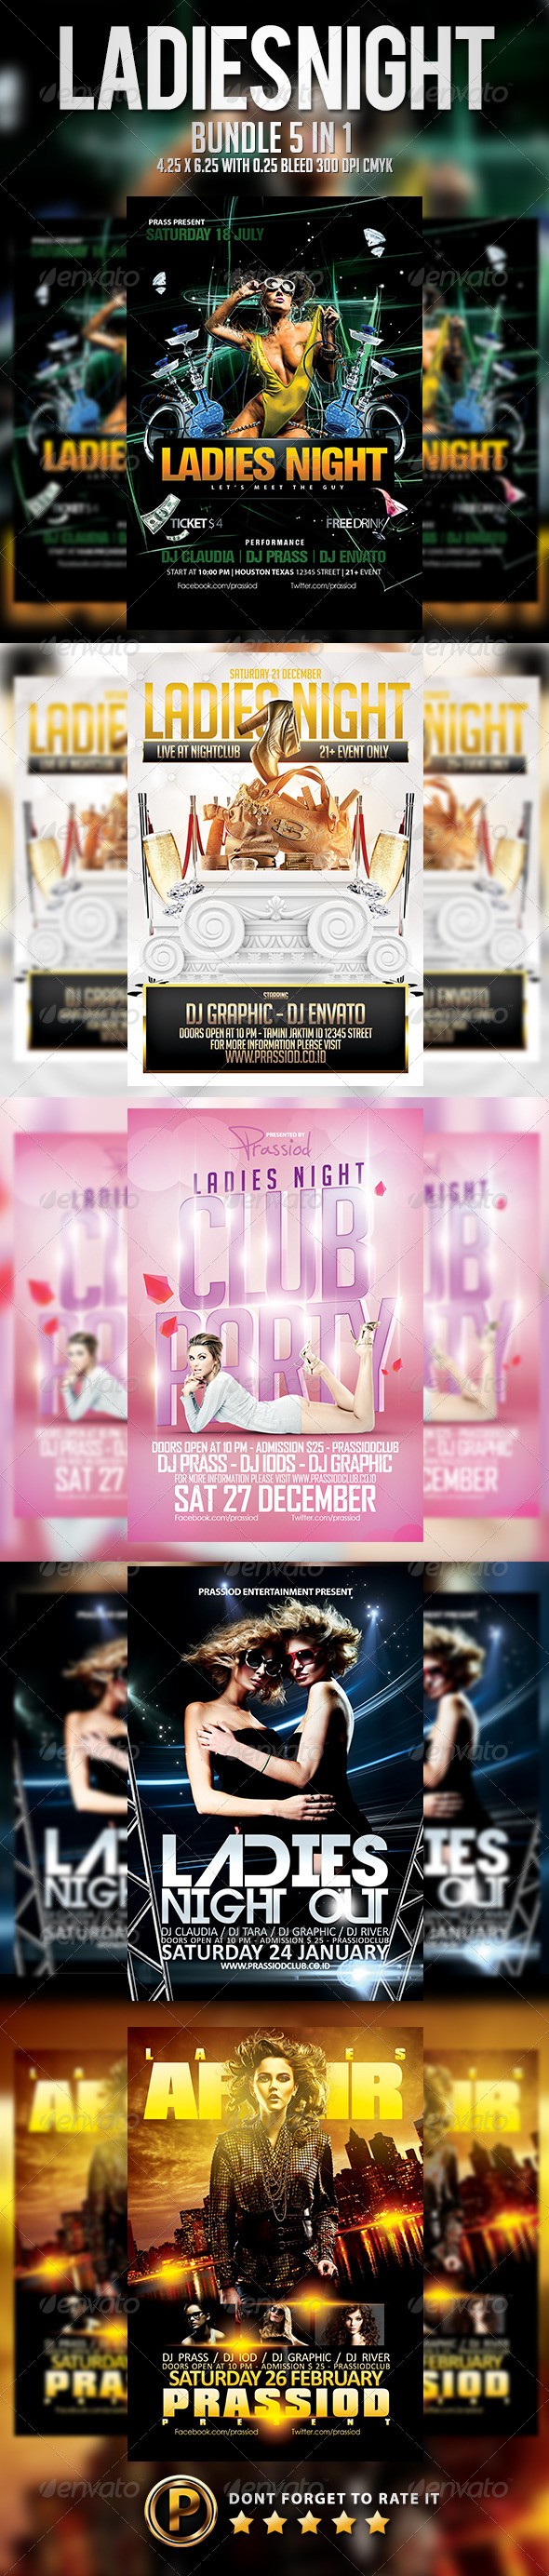 Ladies Night Flyer Template - Bundle 5 in 1 - Clubs & Parties Events